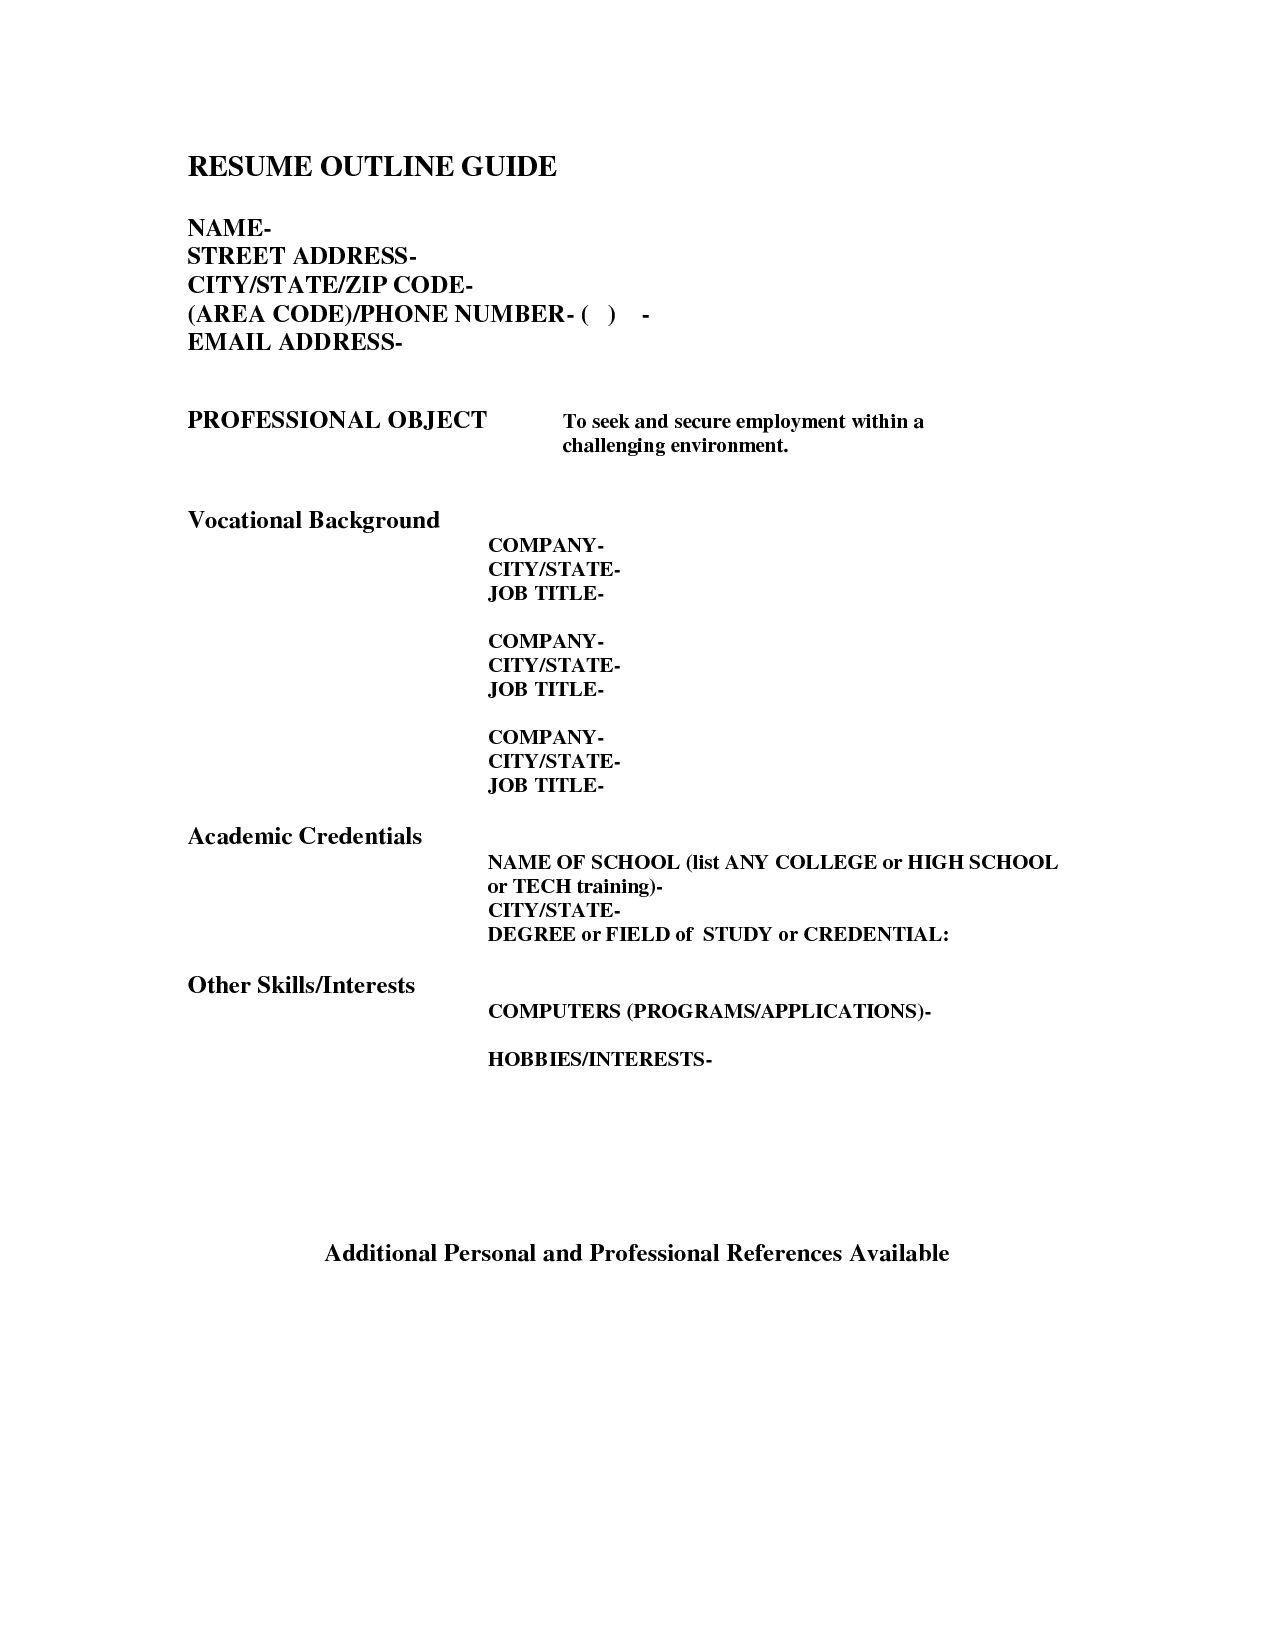 free resumes maker online cover letter resume word excellent inspiration ideas outline example basic high school - Resumes Maker